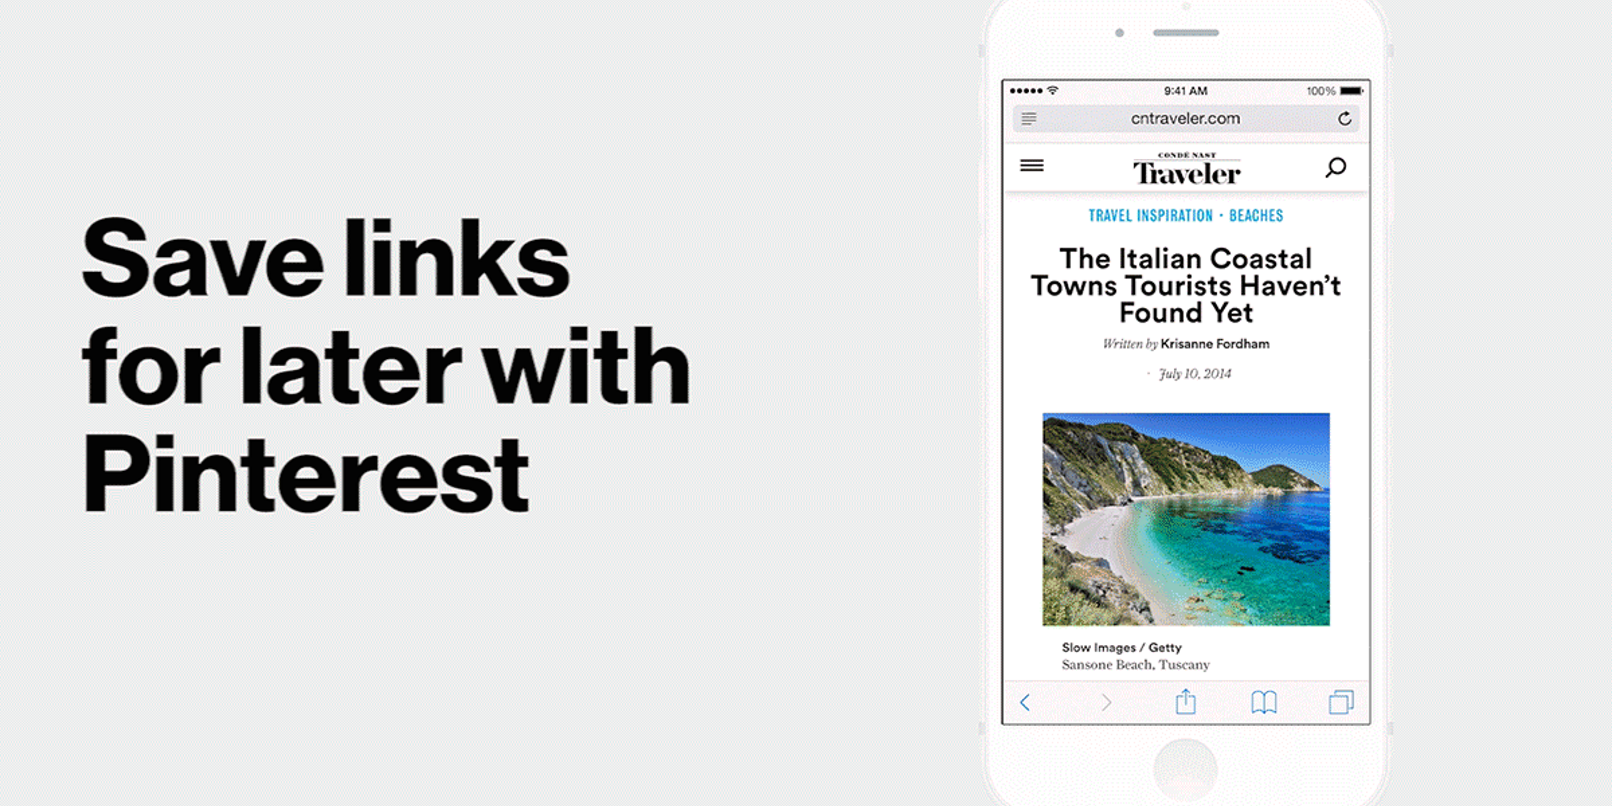 Pinterest on iPhone now has a simple-to-use Pin button